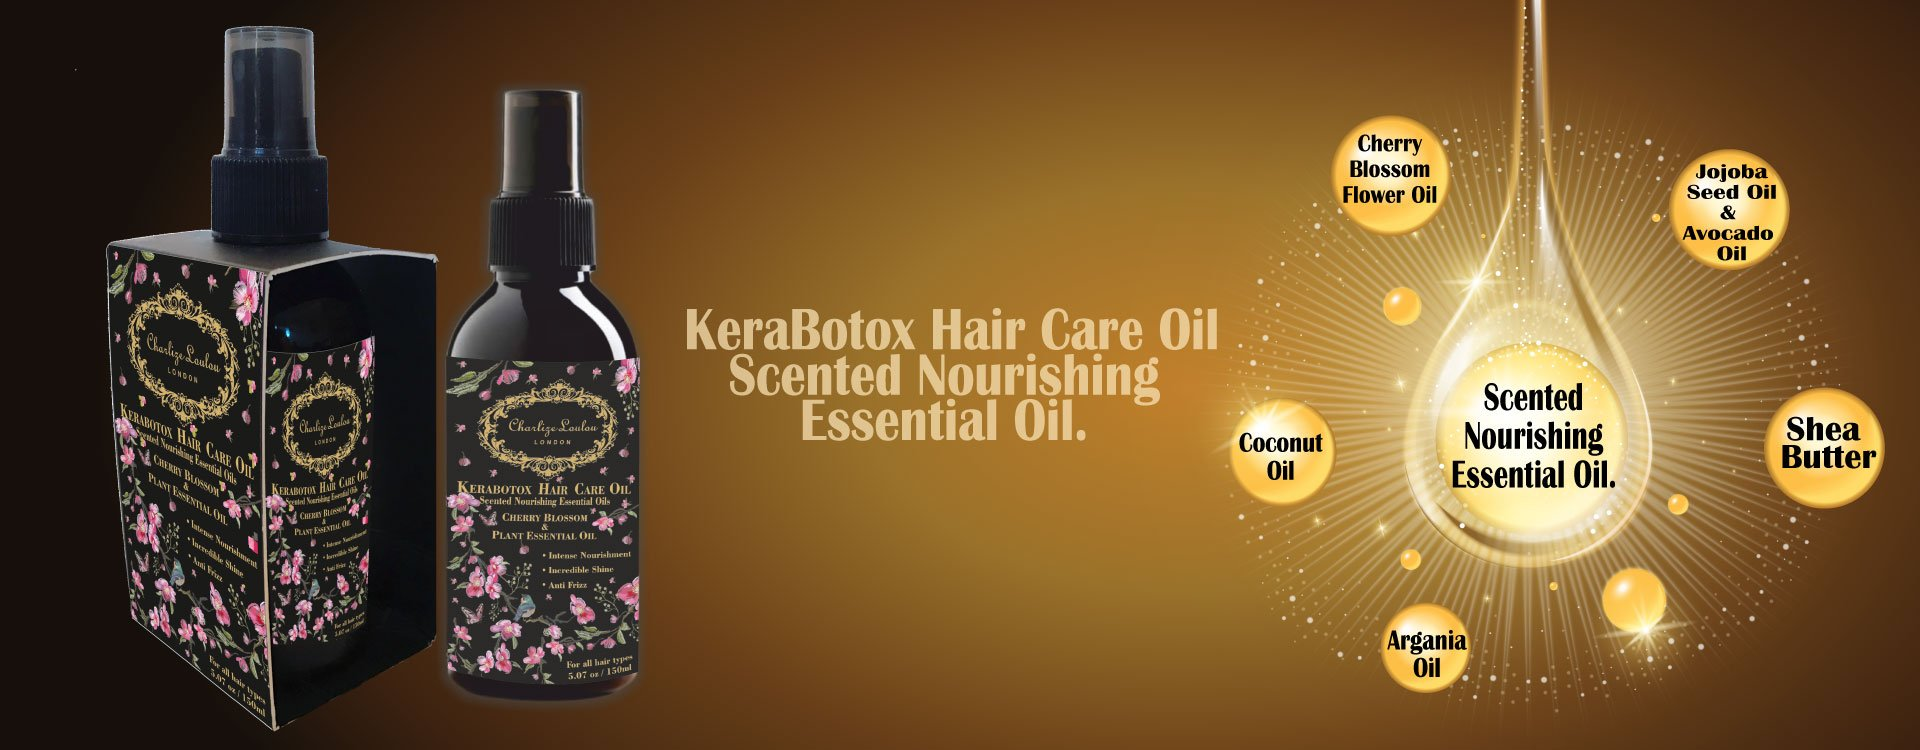 Exposure to environmental stress and cosmetic treatments, such as bleaching or colouring can damage the hair severely. Our KeraBotox Hair Care Oil, Scented Nourishing Essential Oil has a naturally-derived silicone replacement improves combing forces, static effects, curl retentions and the censorial profile of hair